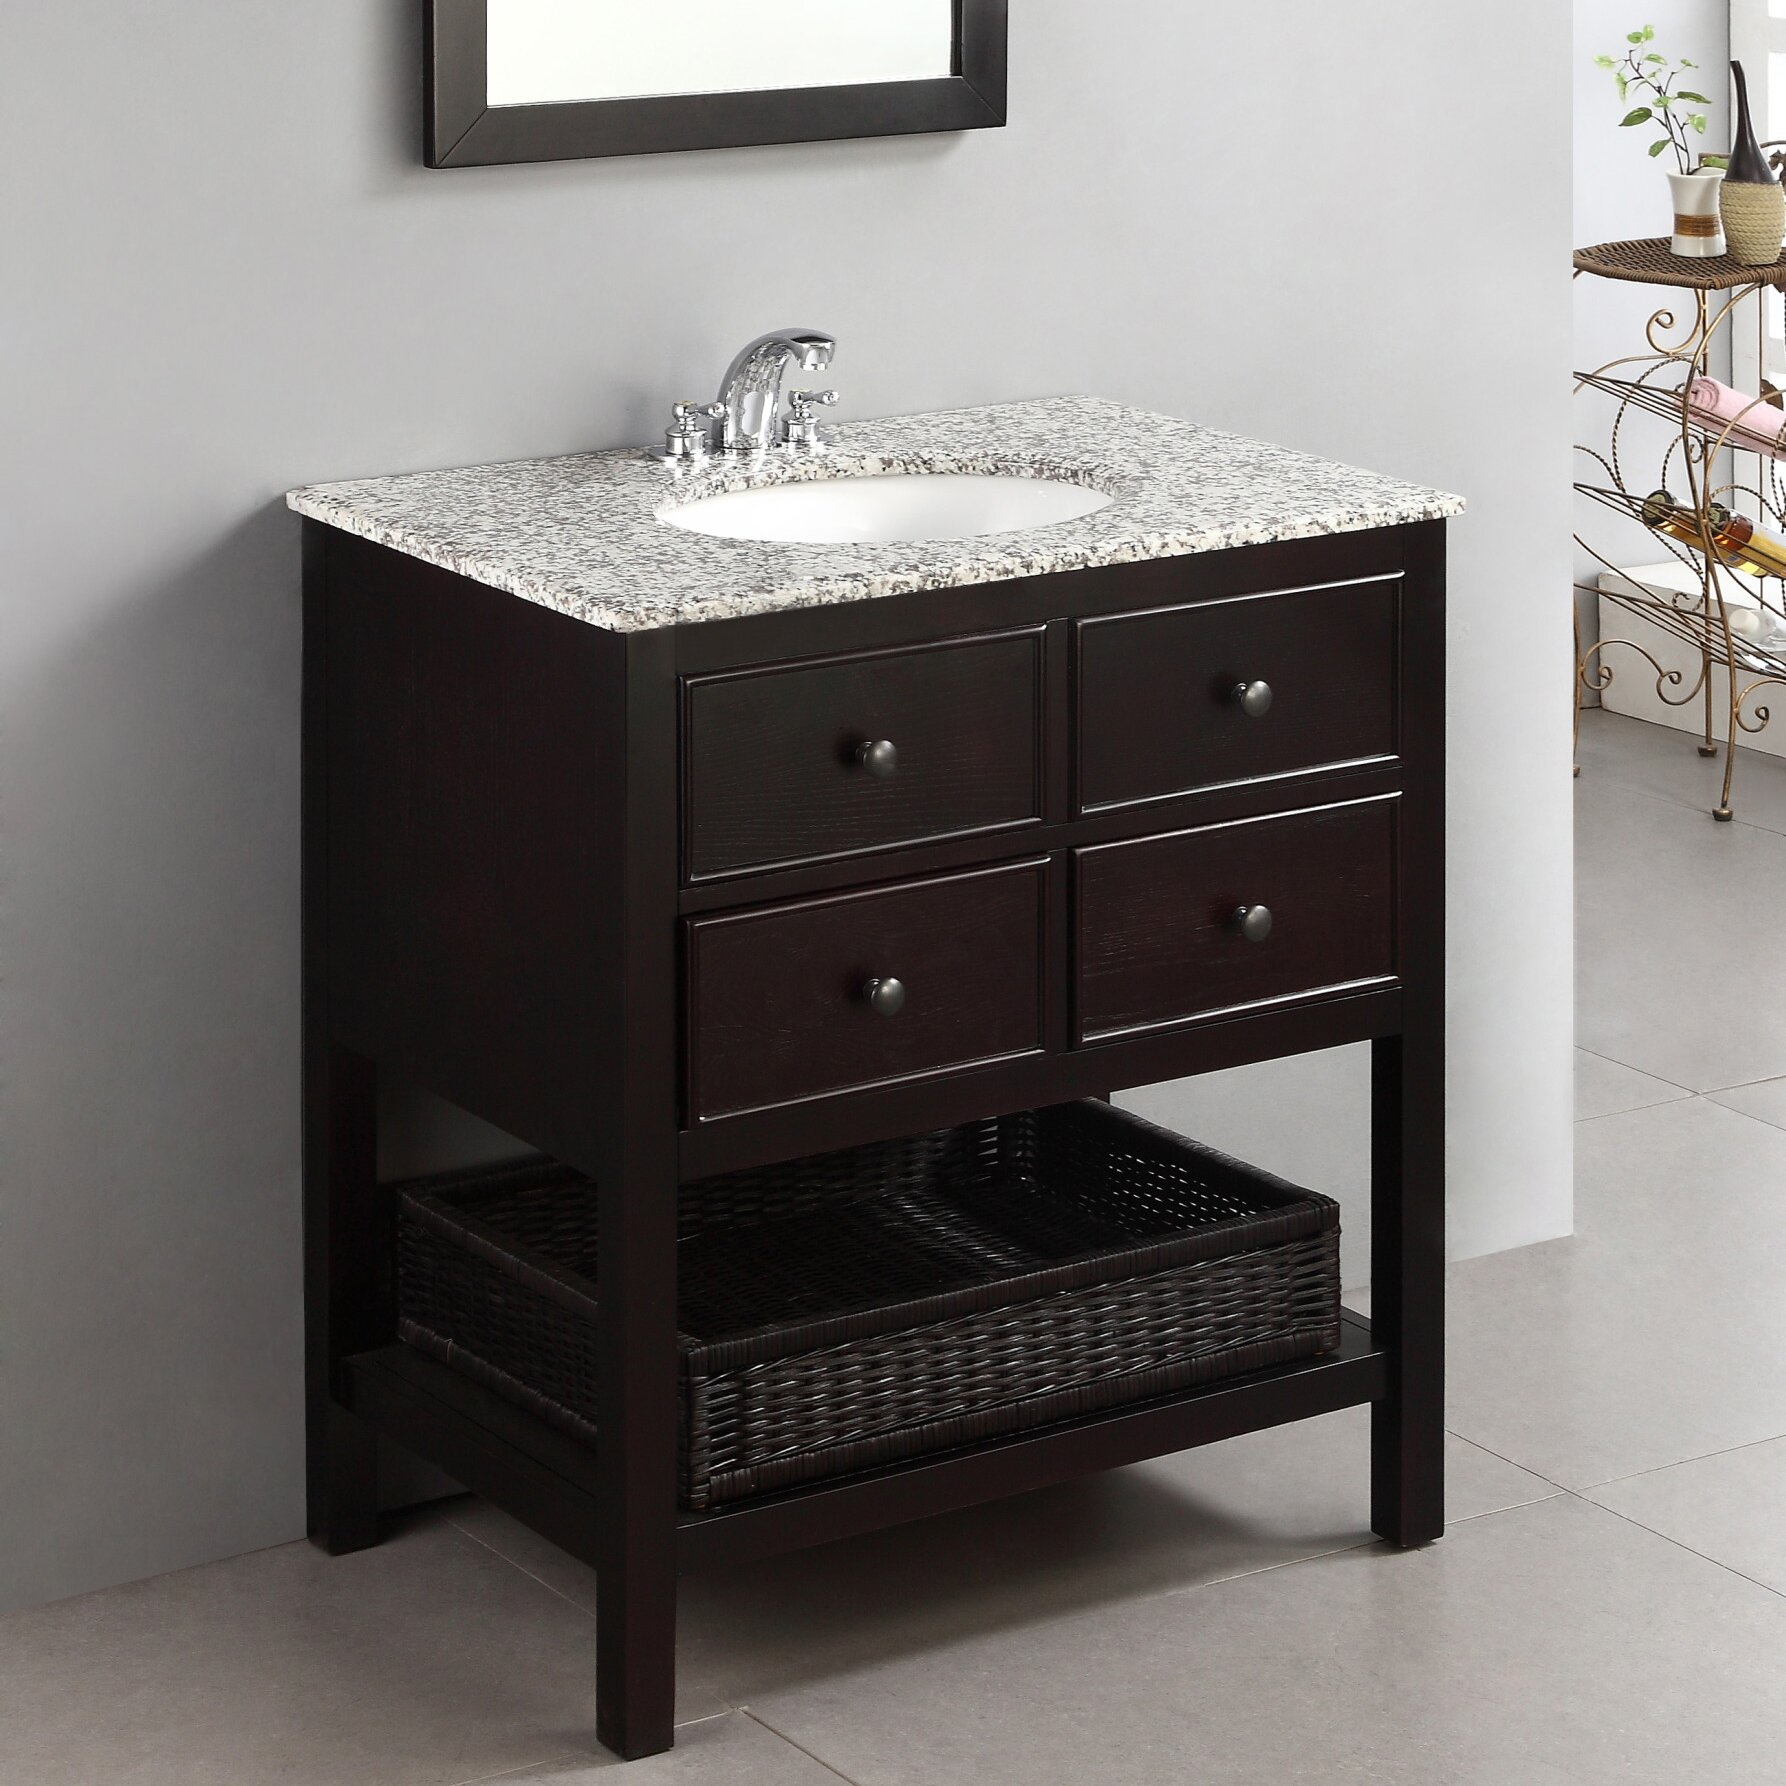 sink vincette double foremost vanity rocco vincente units qosy best ashburn